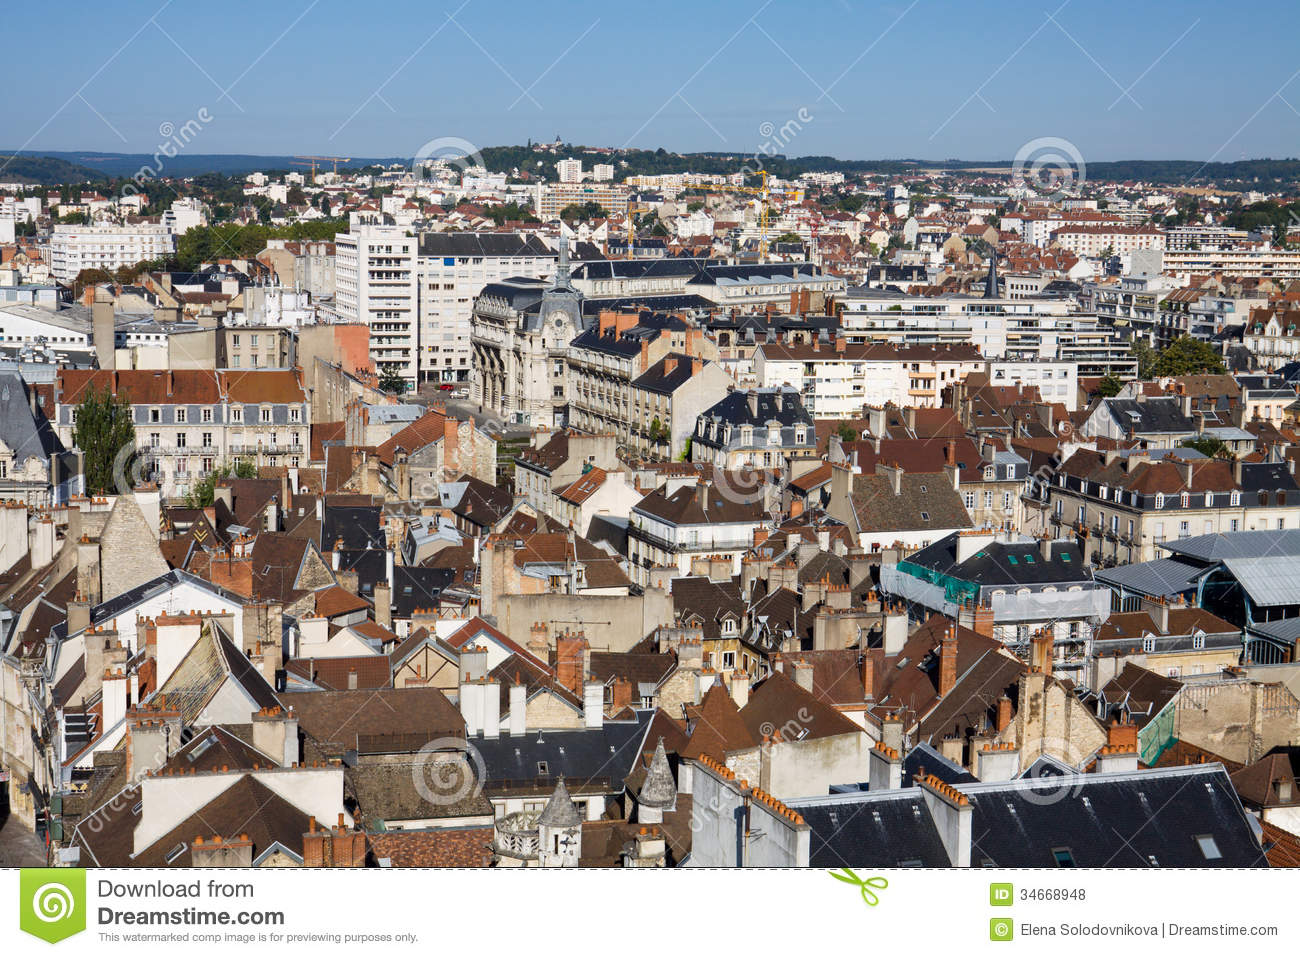 Aerial View Of Dijon City In France Royalty Free Stock Photos Image ...